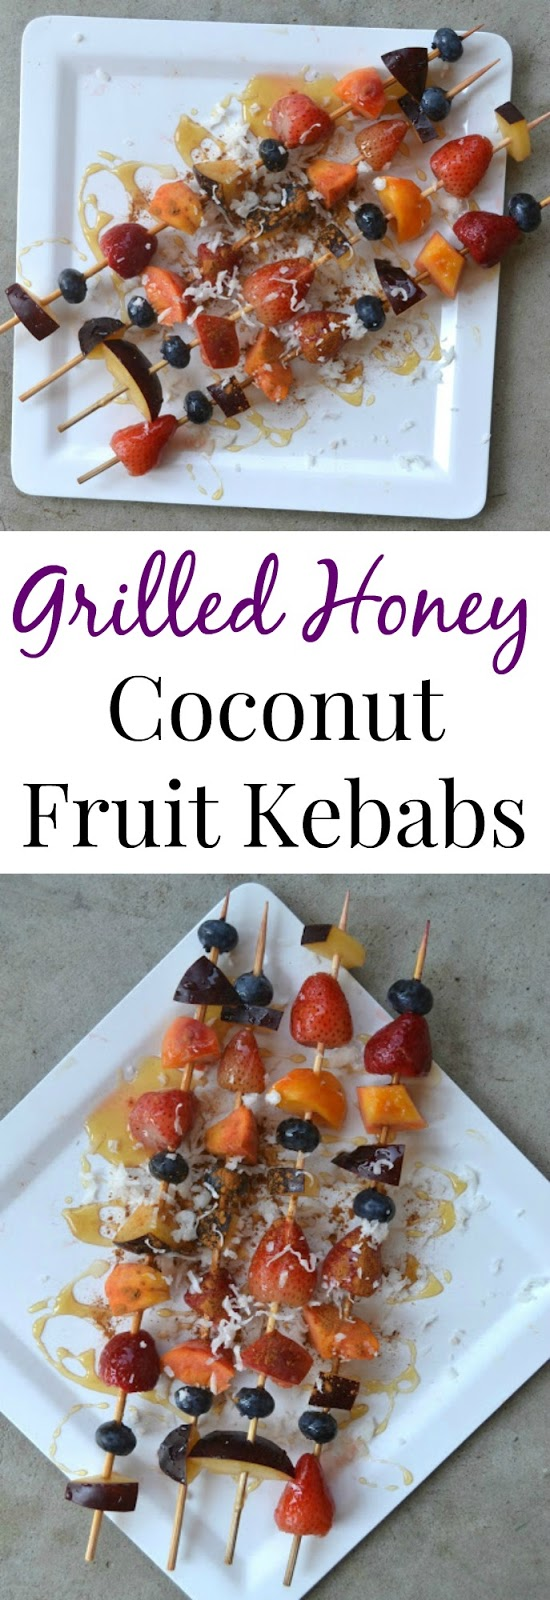 These Grilled Honey Coconut Fruit Kebabs make the perfect healthy dessert and are simple to make!